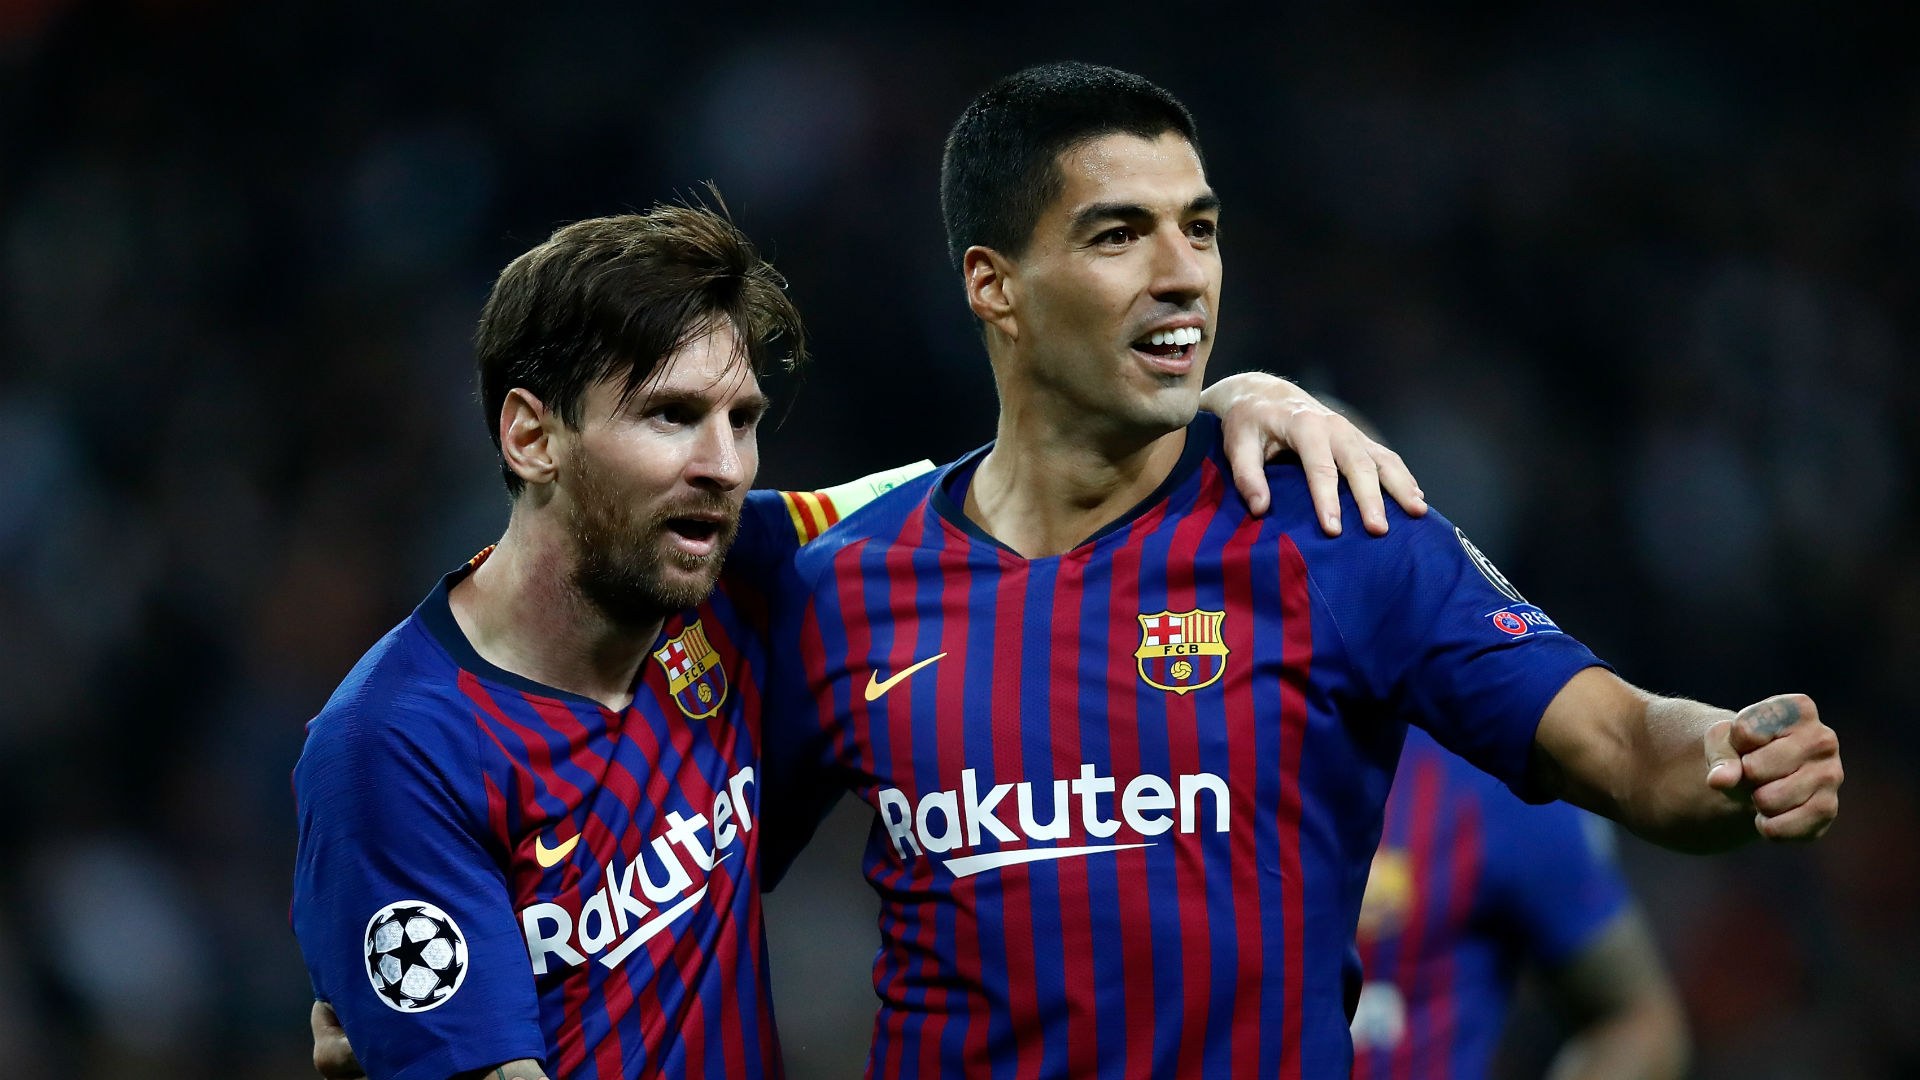 Deadly duo Messi and Suarez outscoring LaLiga teams